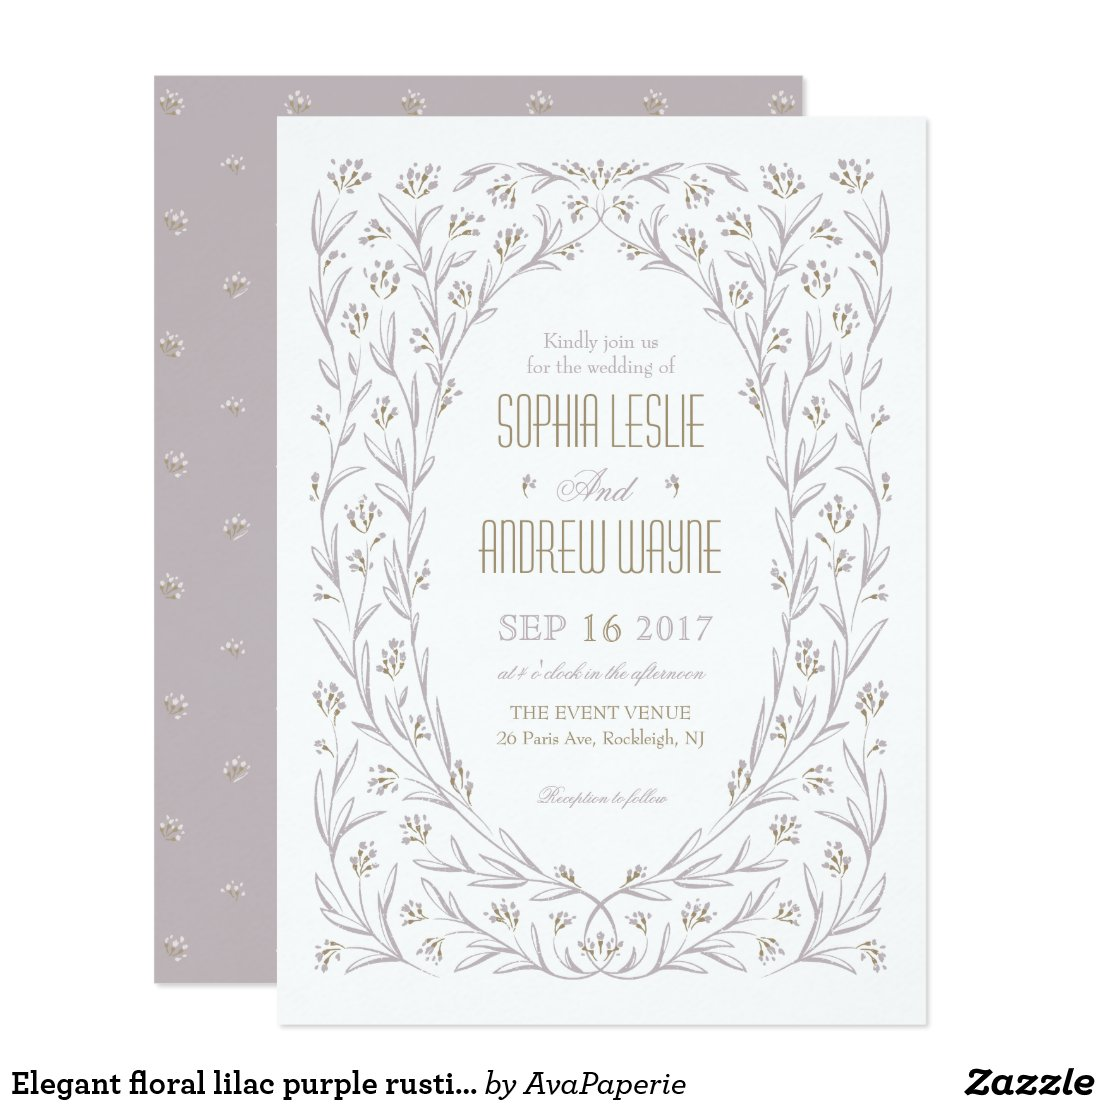 Elegant floral lilac purple rustic wedding card